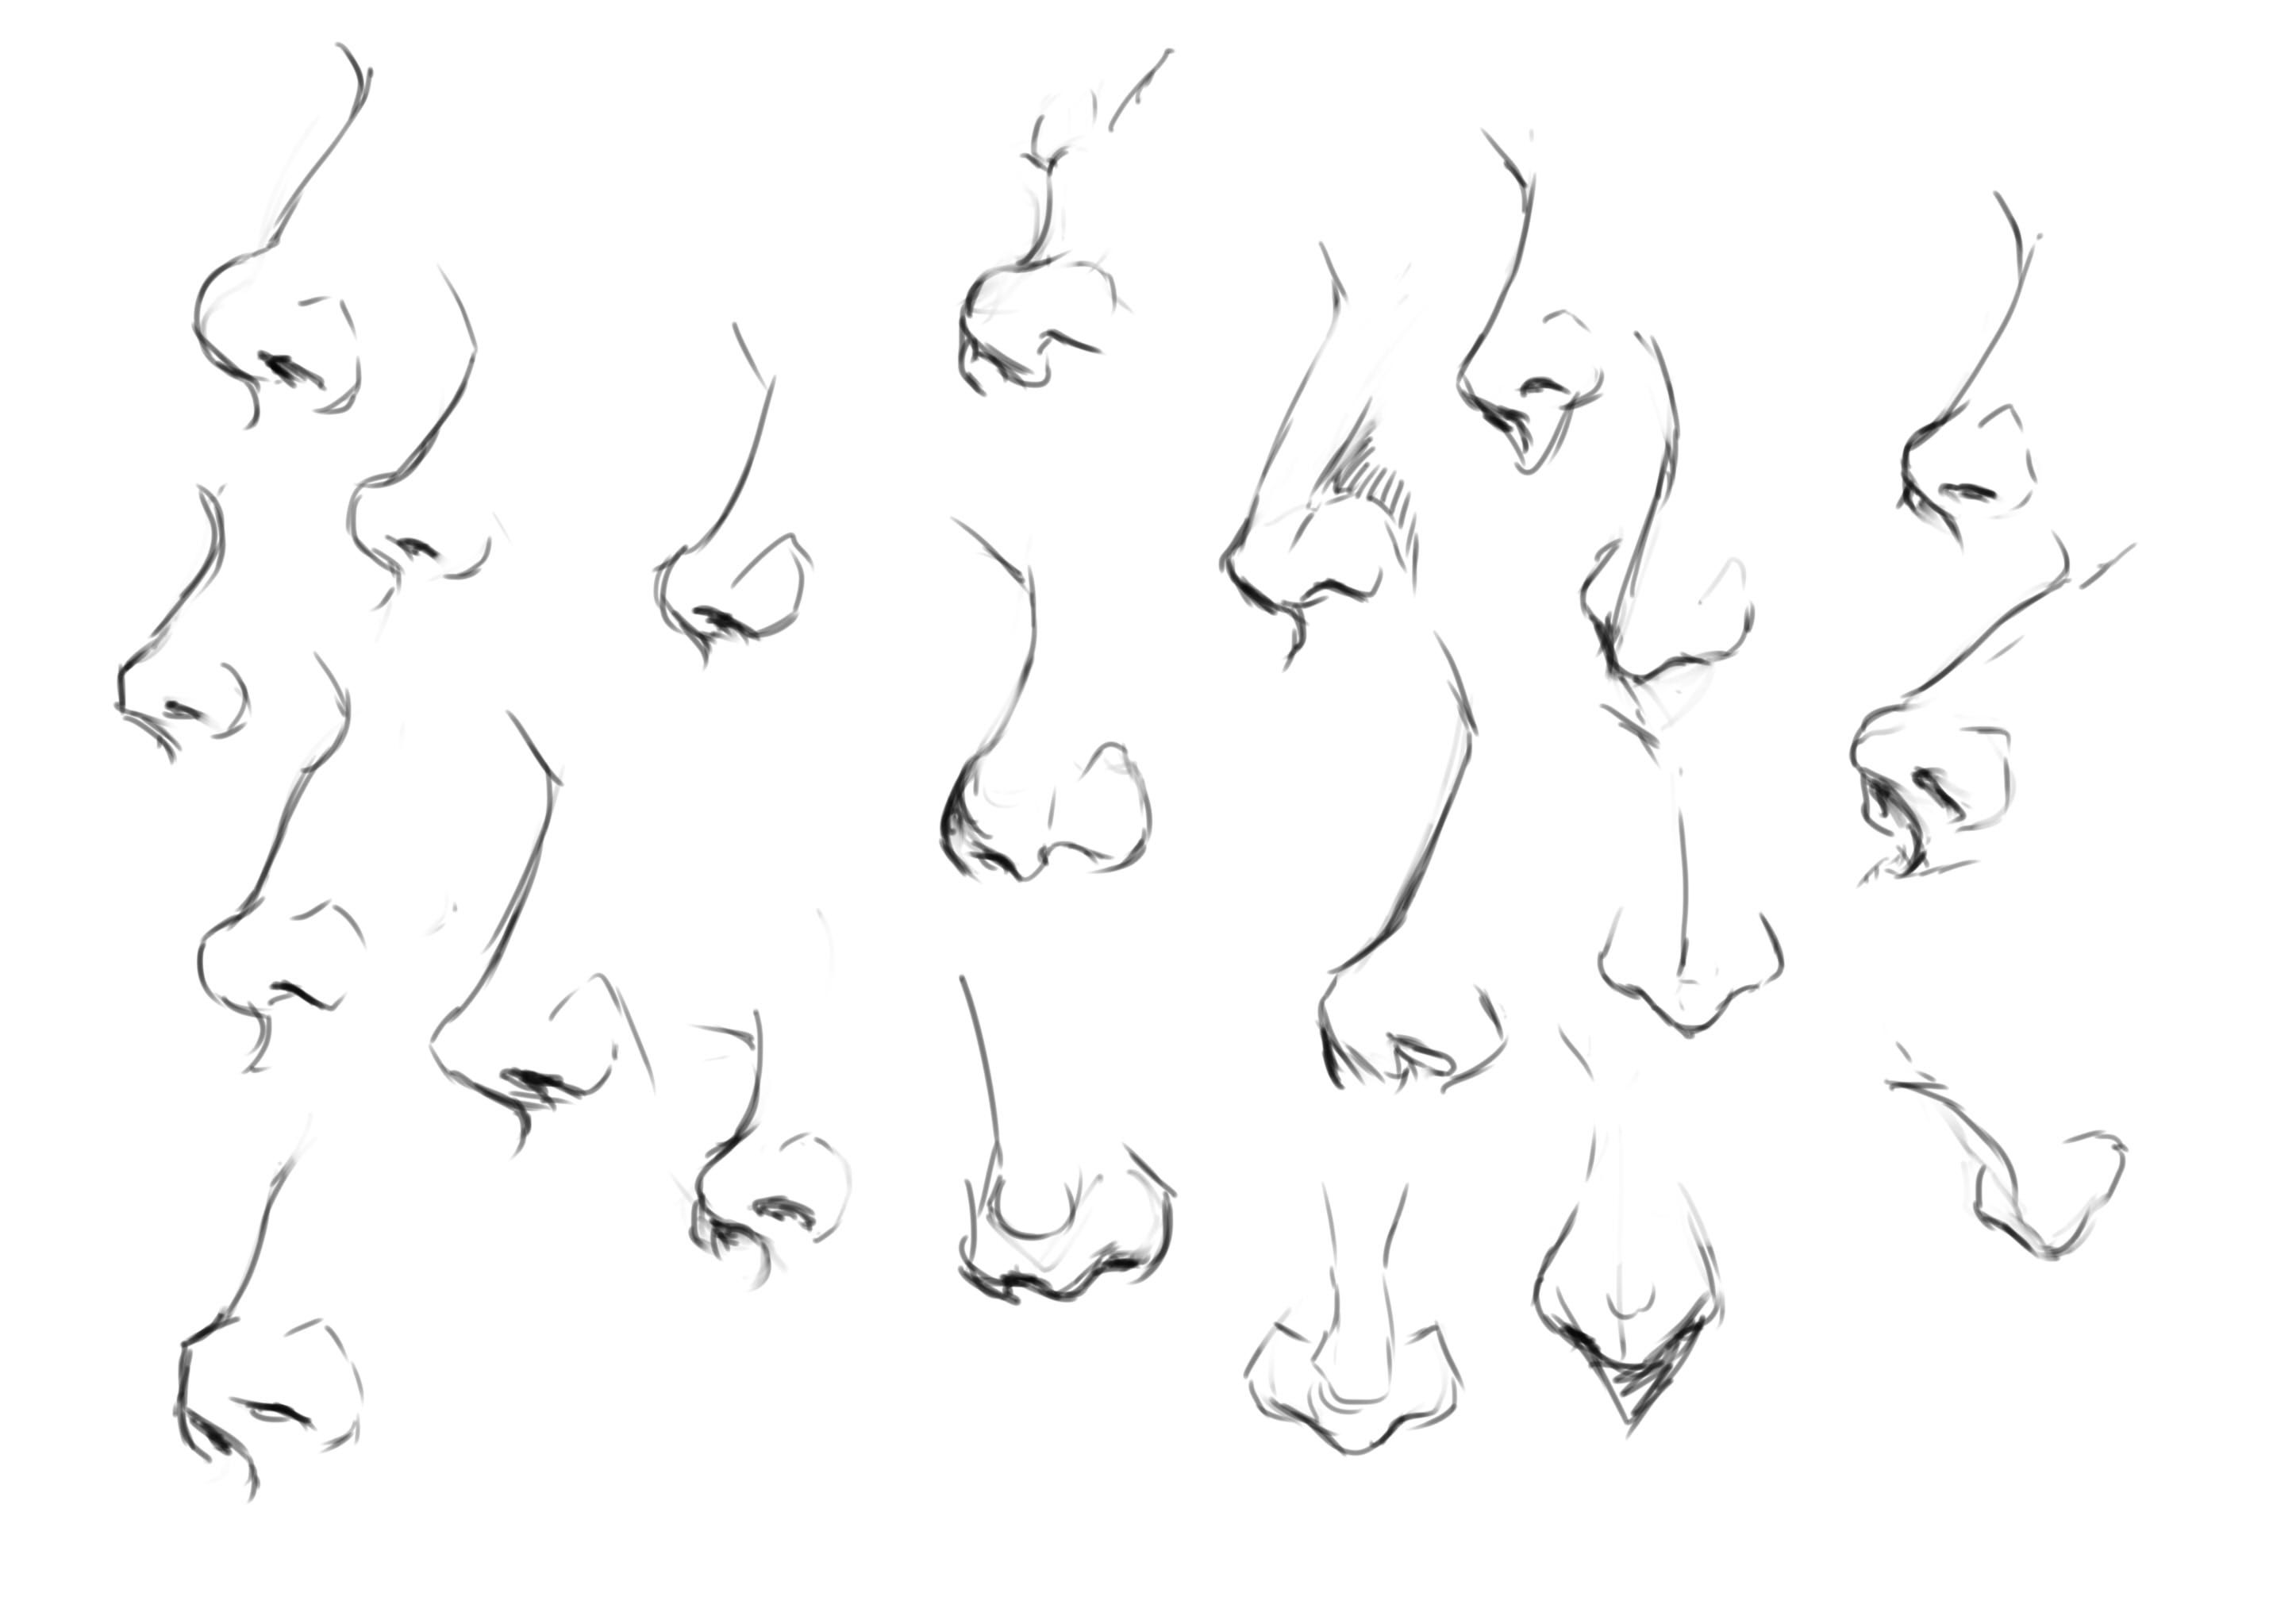 Practice: Noses, Figures, And Motivation